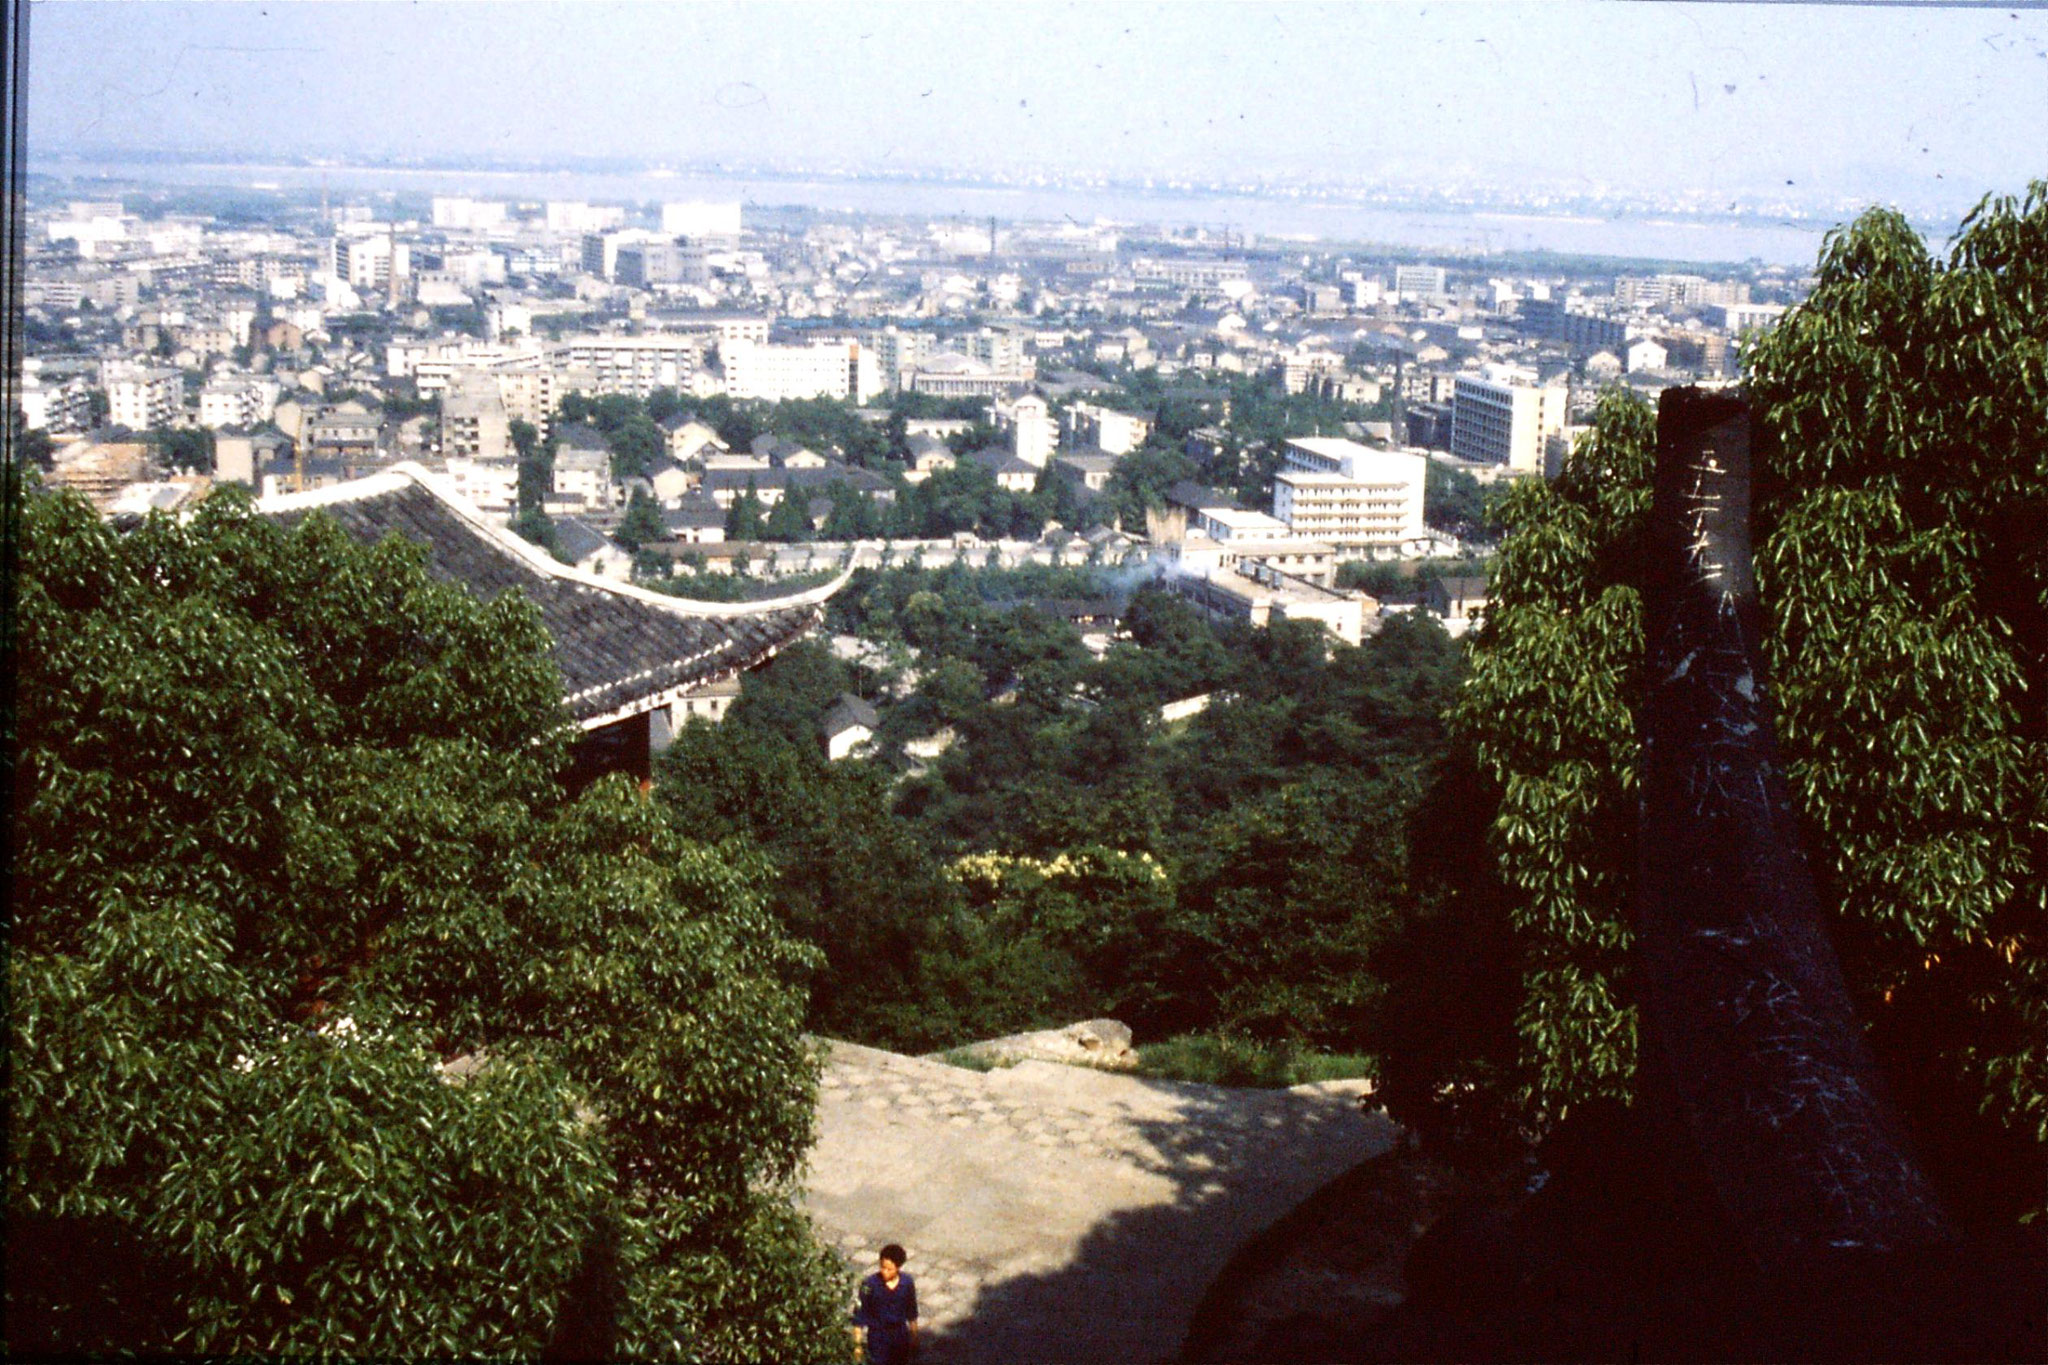 24/6/1989: 13: SE from Ziyang hill